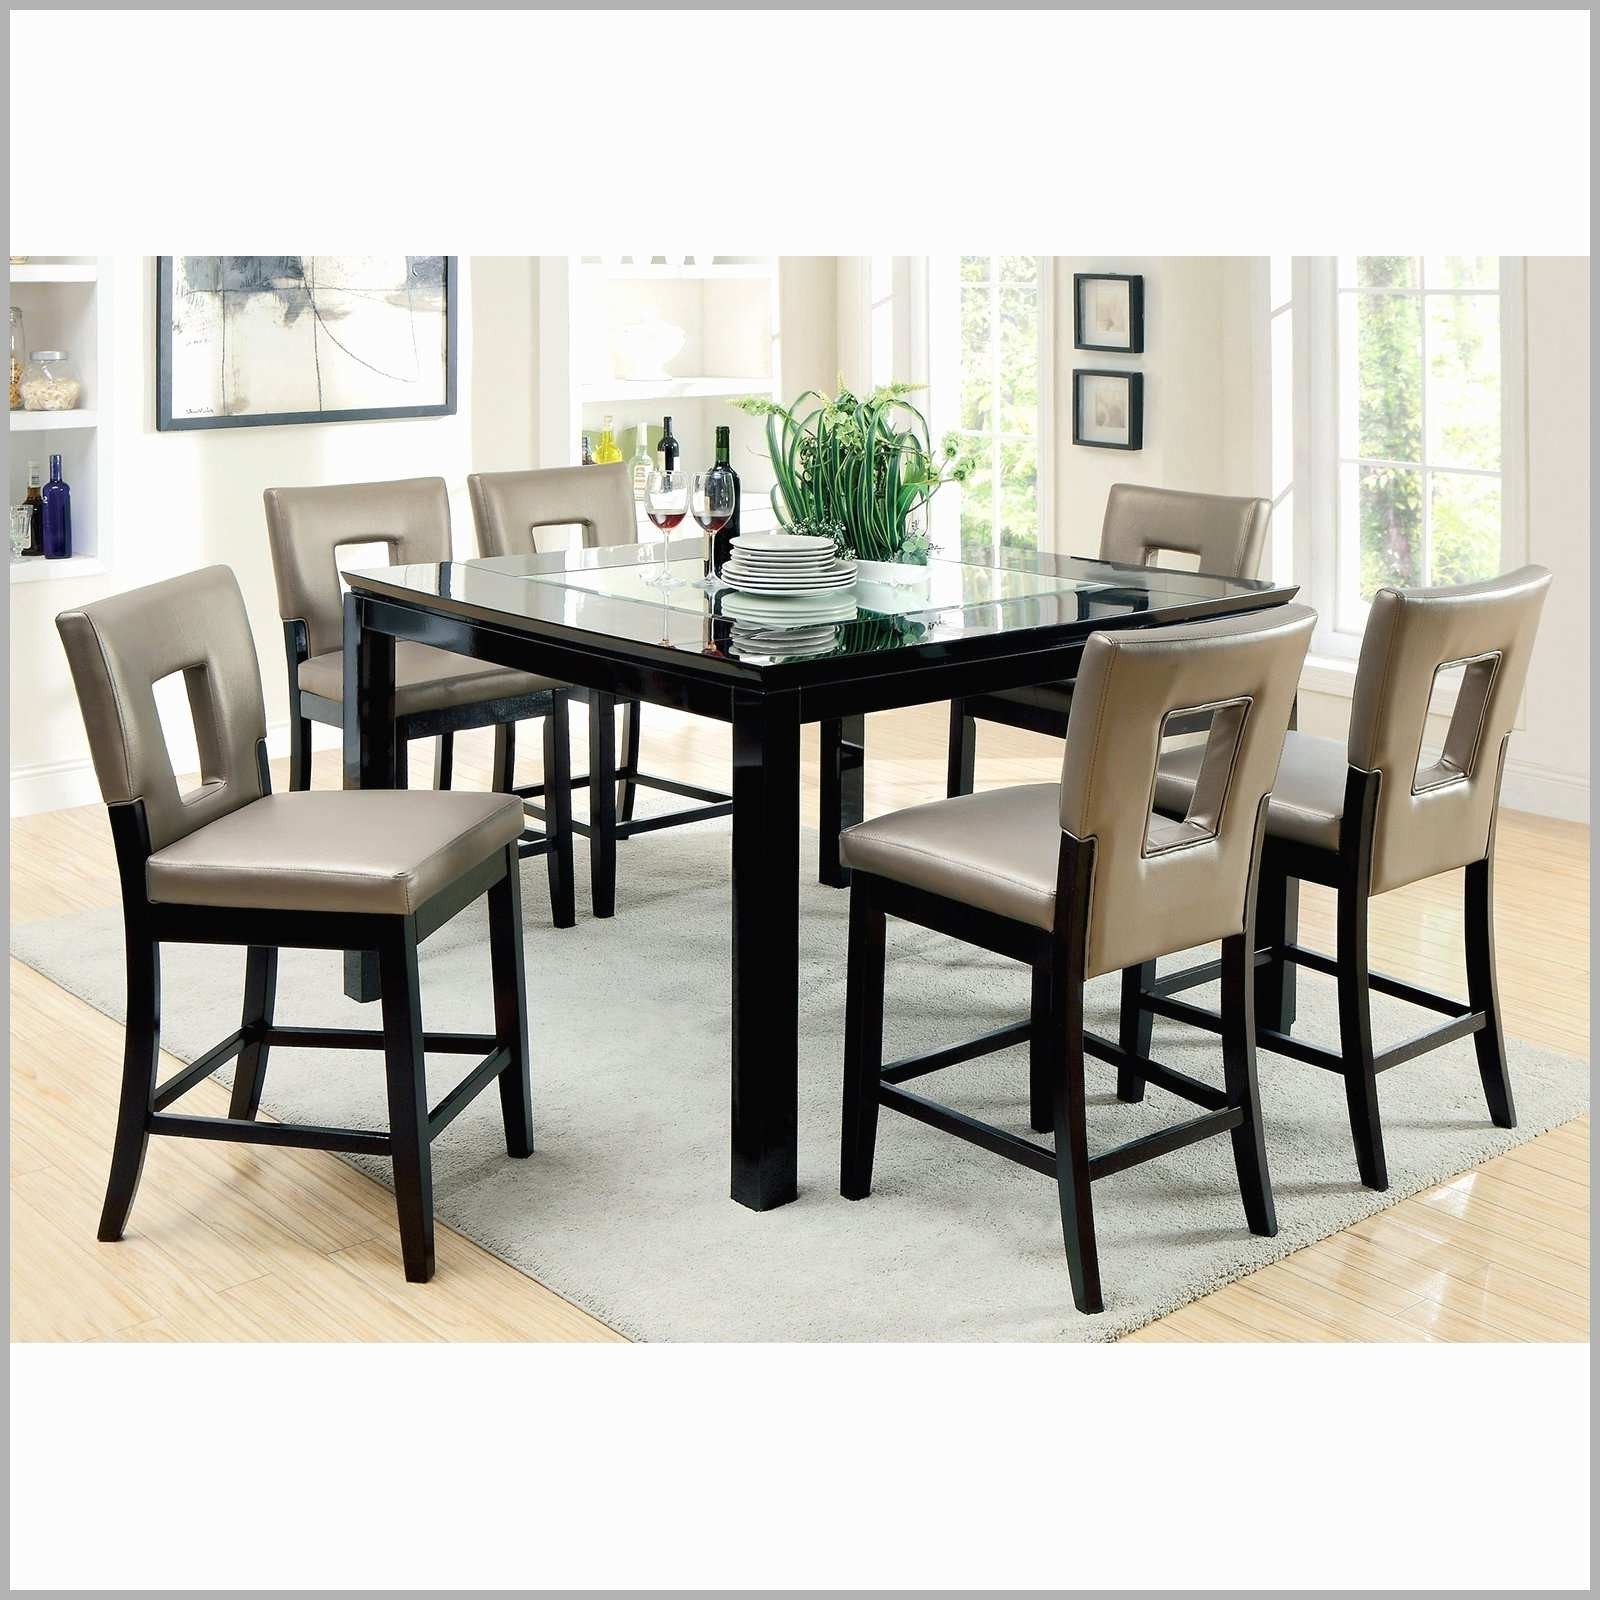 White High Gloss Extending Dining Table Luxury 8 Seater Dining Table Within Preferred White 8 Seater Dining Tables (View 25 of 25)